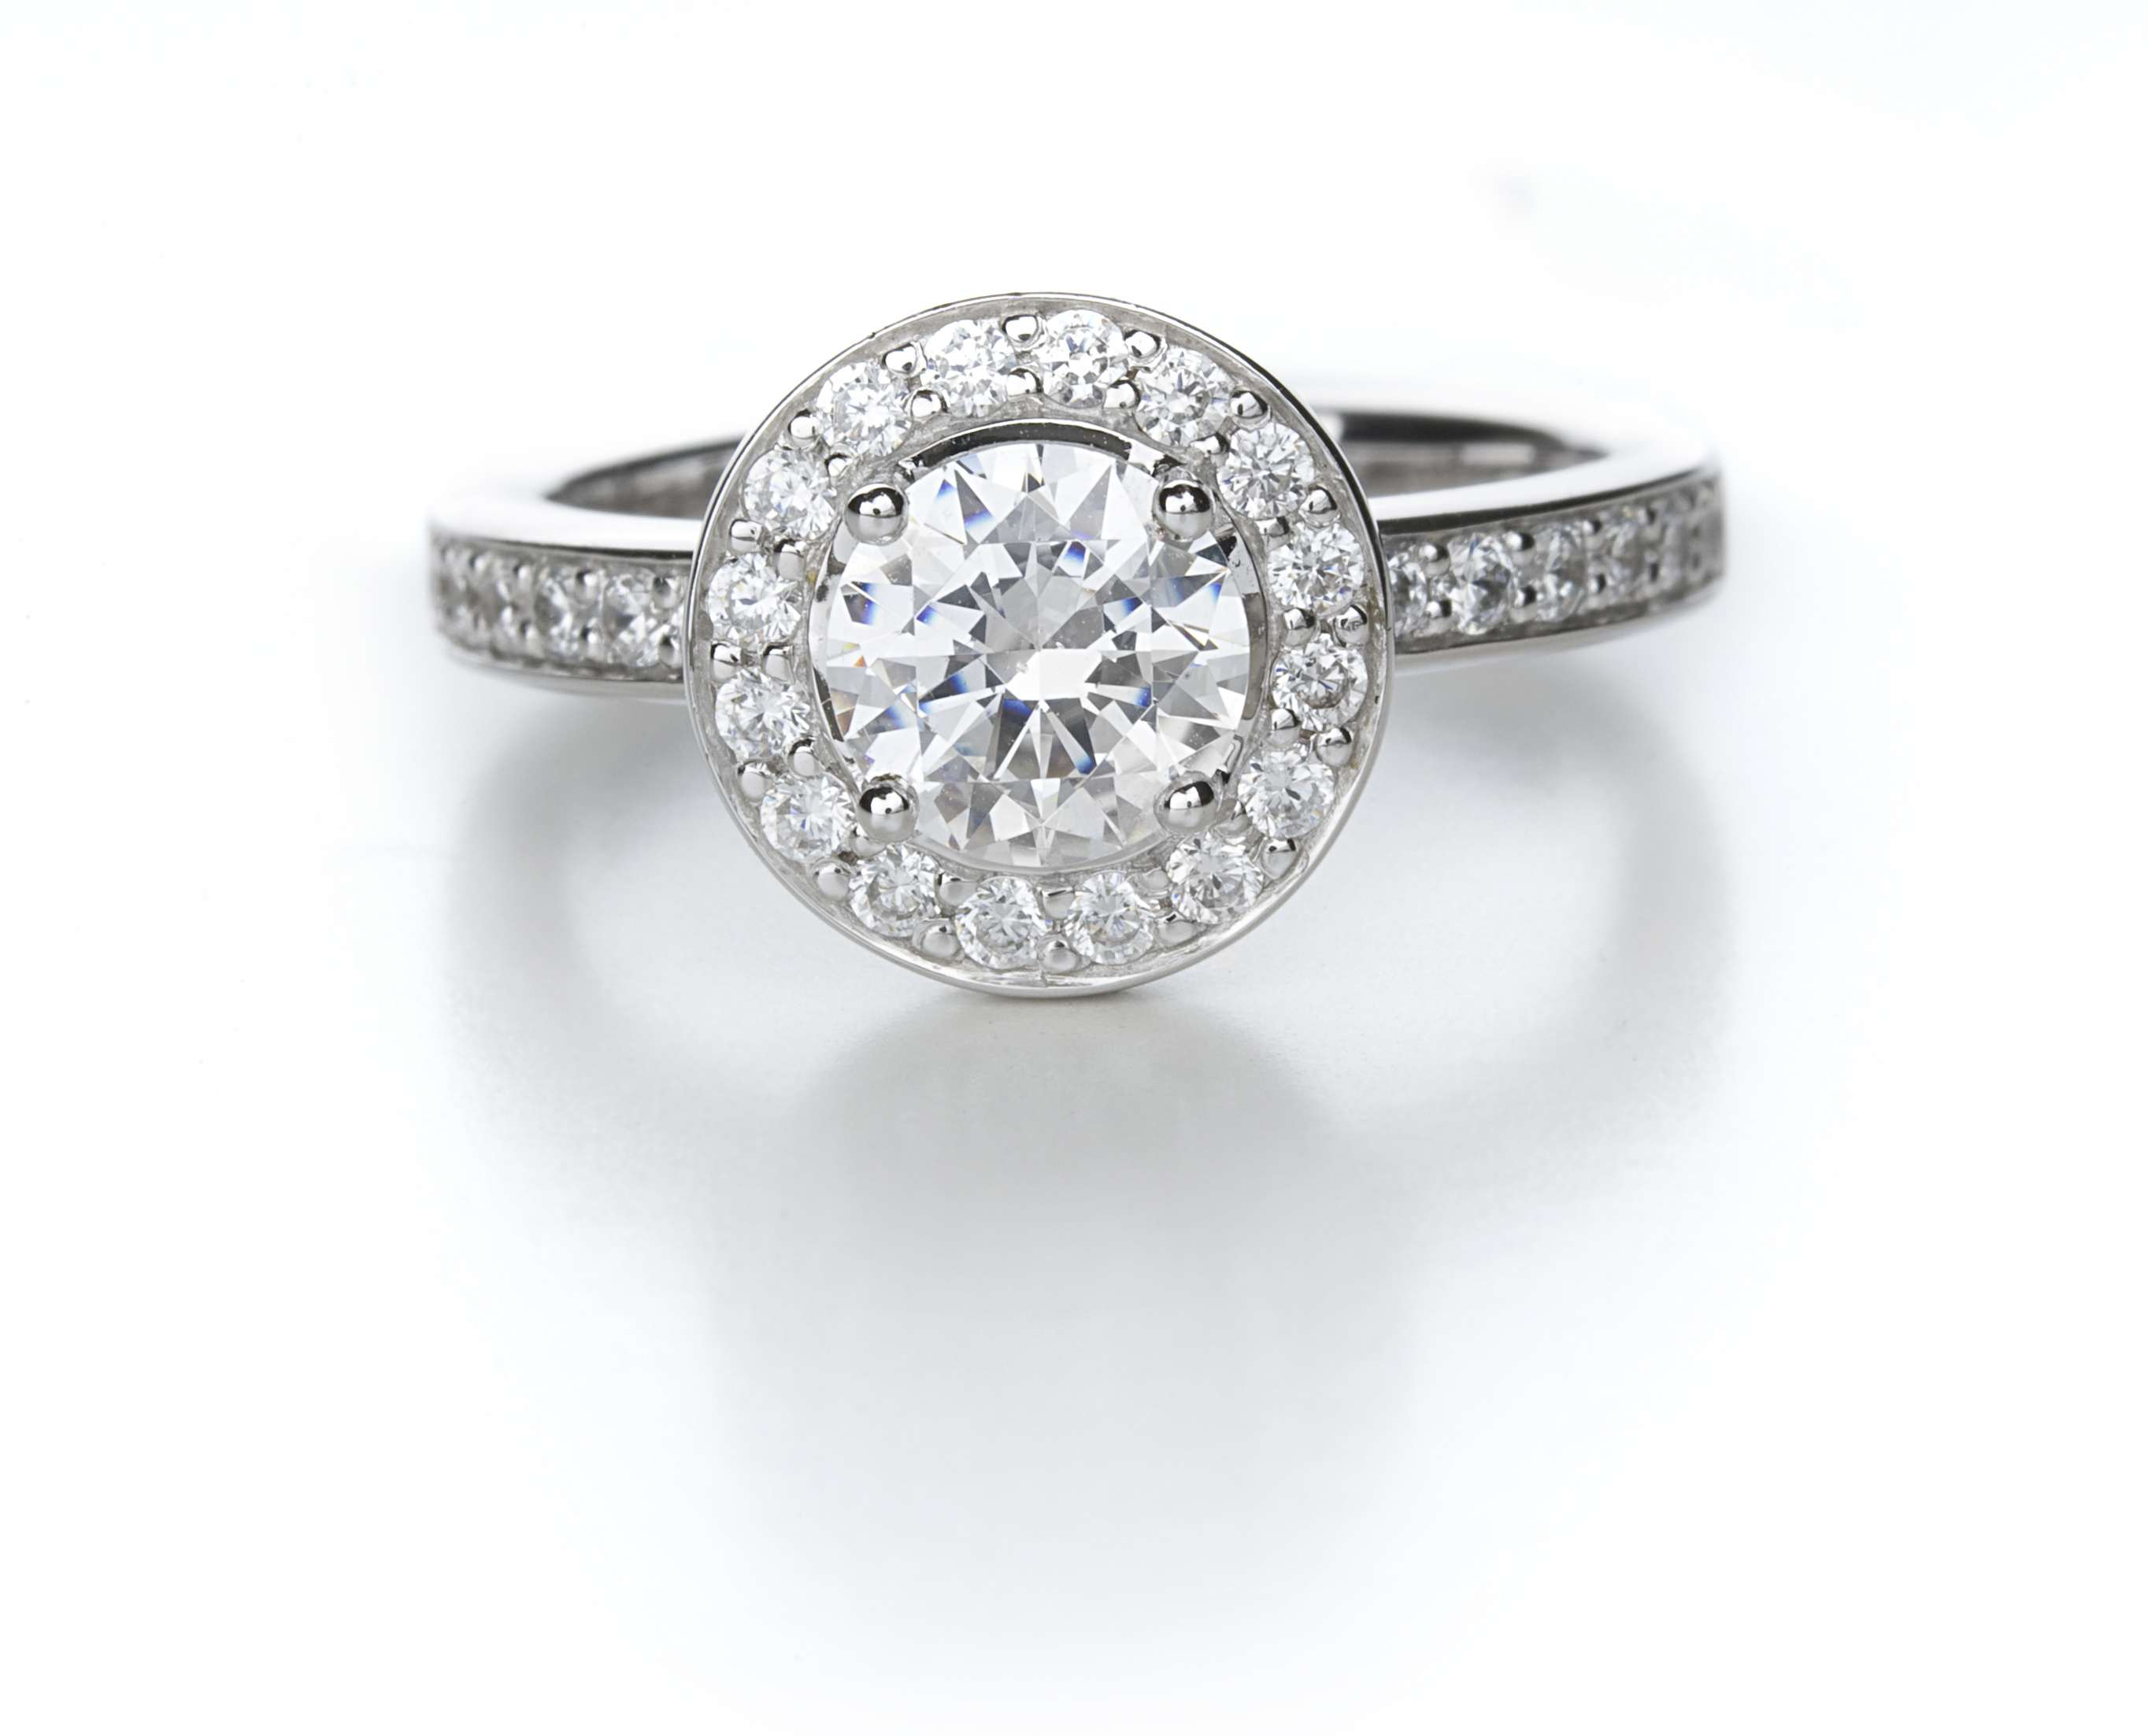 bazaar old ring school news best brides blake celebrity engagement rings inspiration uk lively